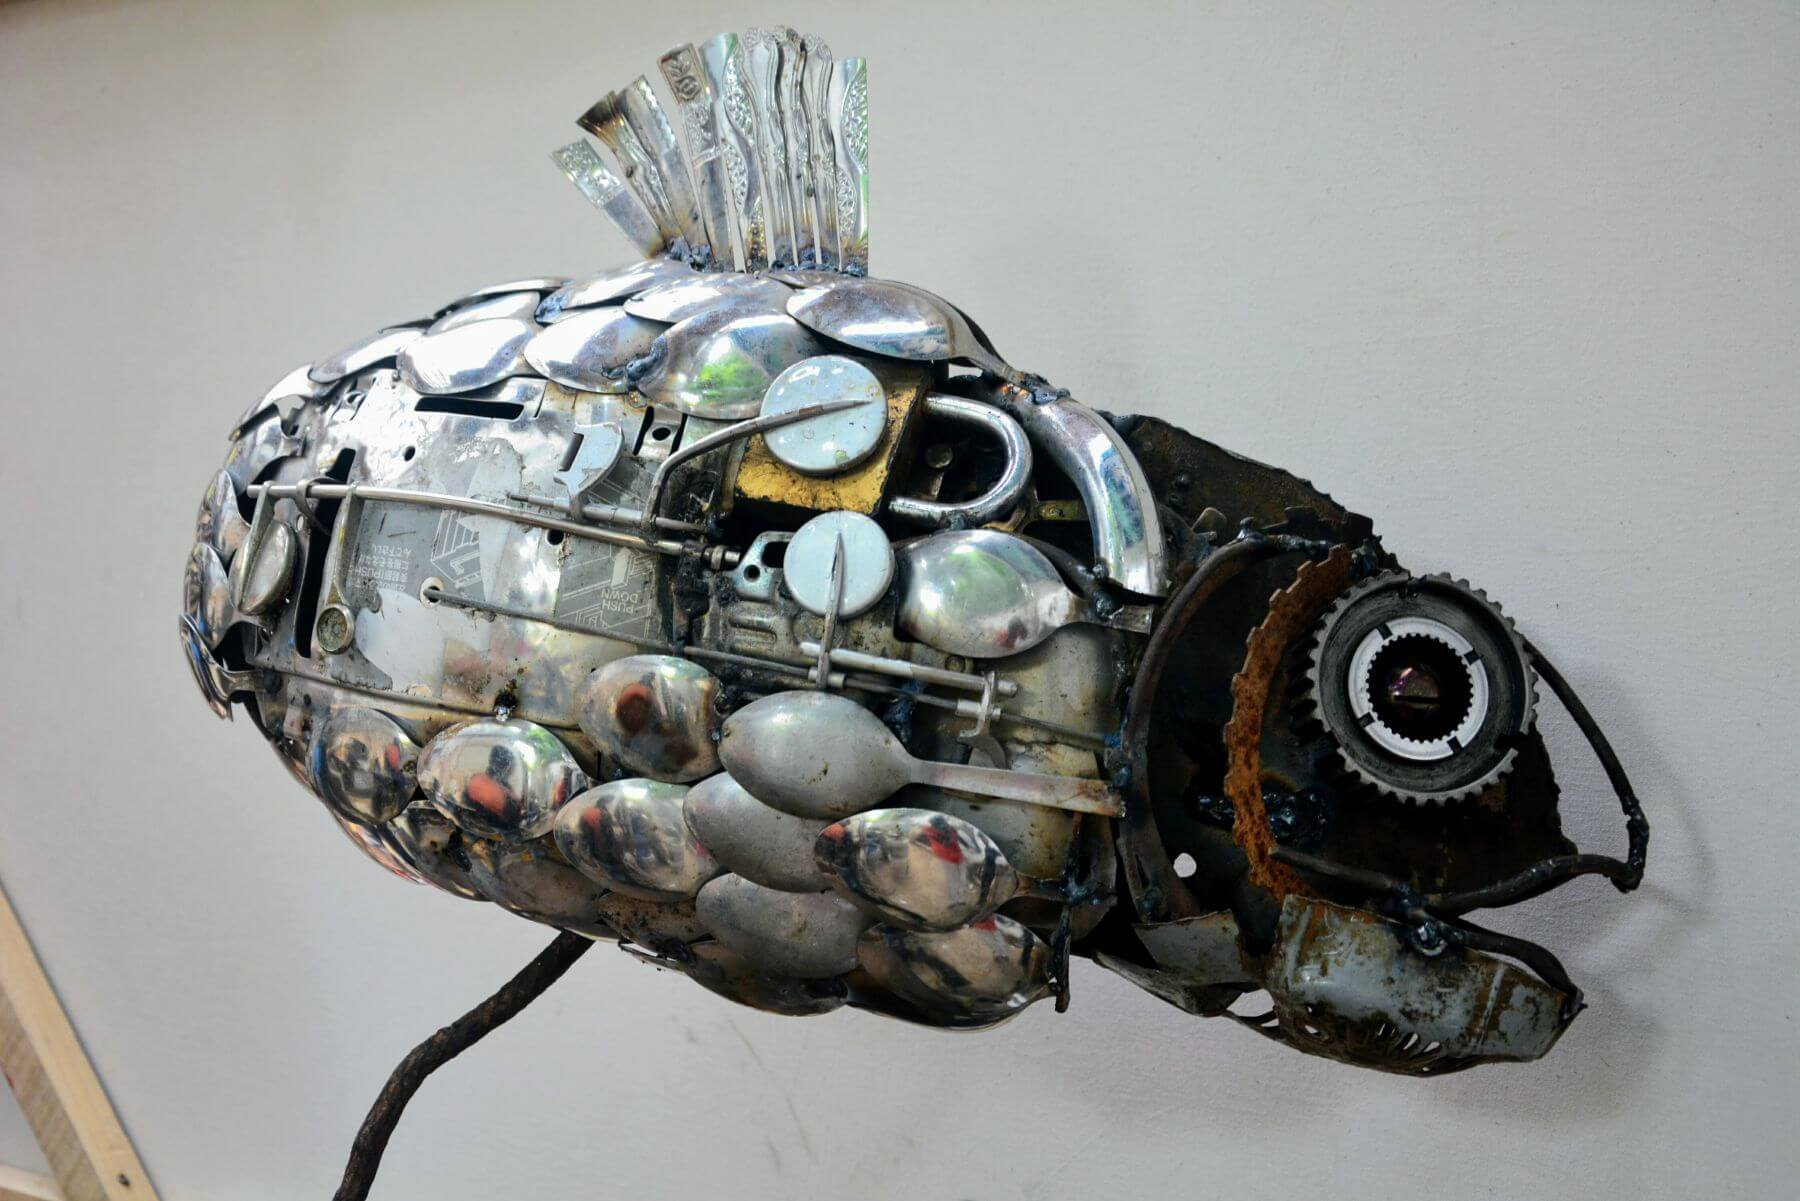 Fish of spoons, by Onche Ugbabe in Abujua, Nigeria